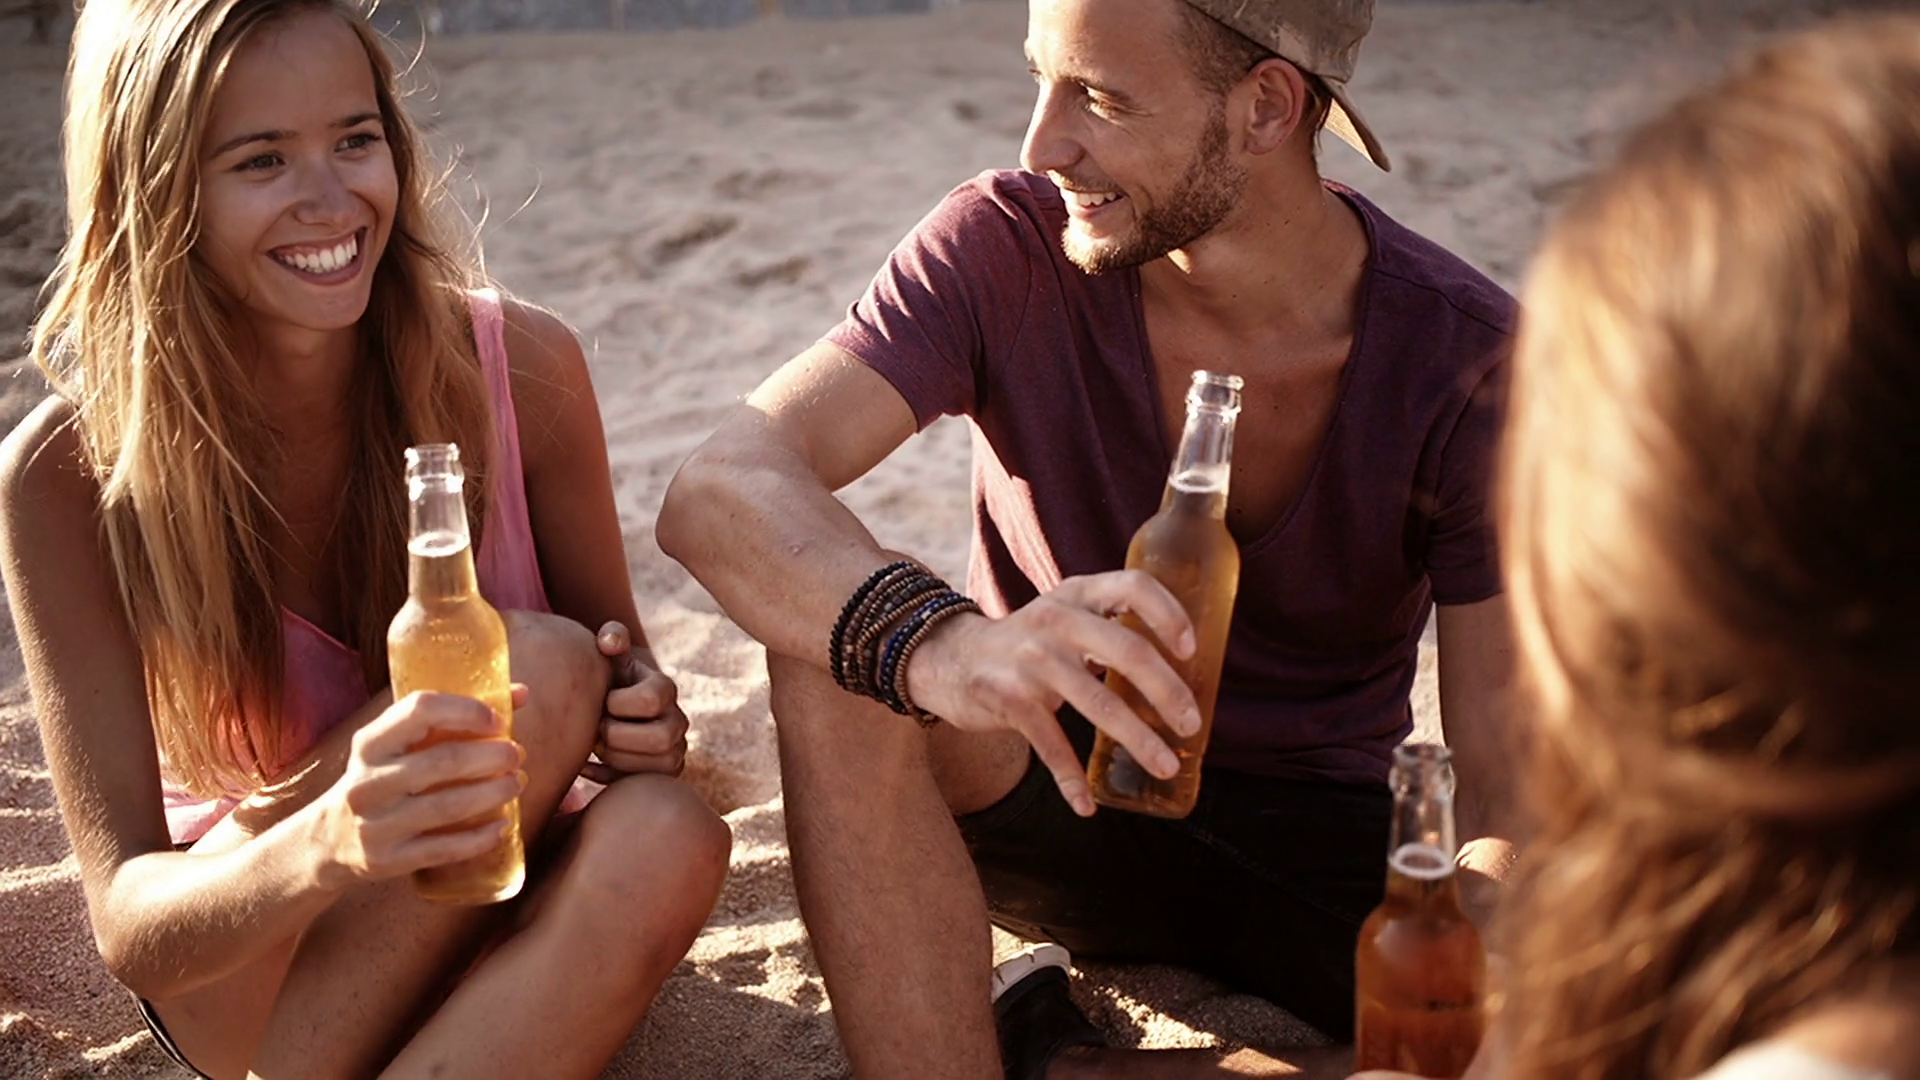 friends-cheers-beers-at-beach_b0ybmmvex_thumbnail-full01